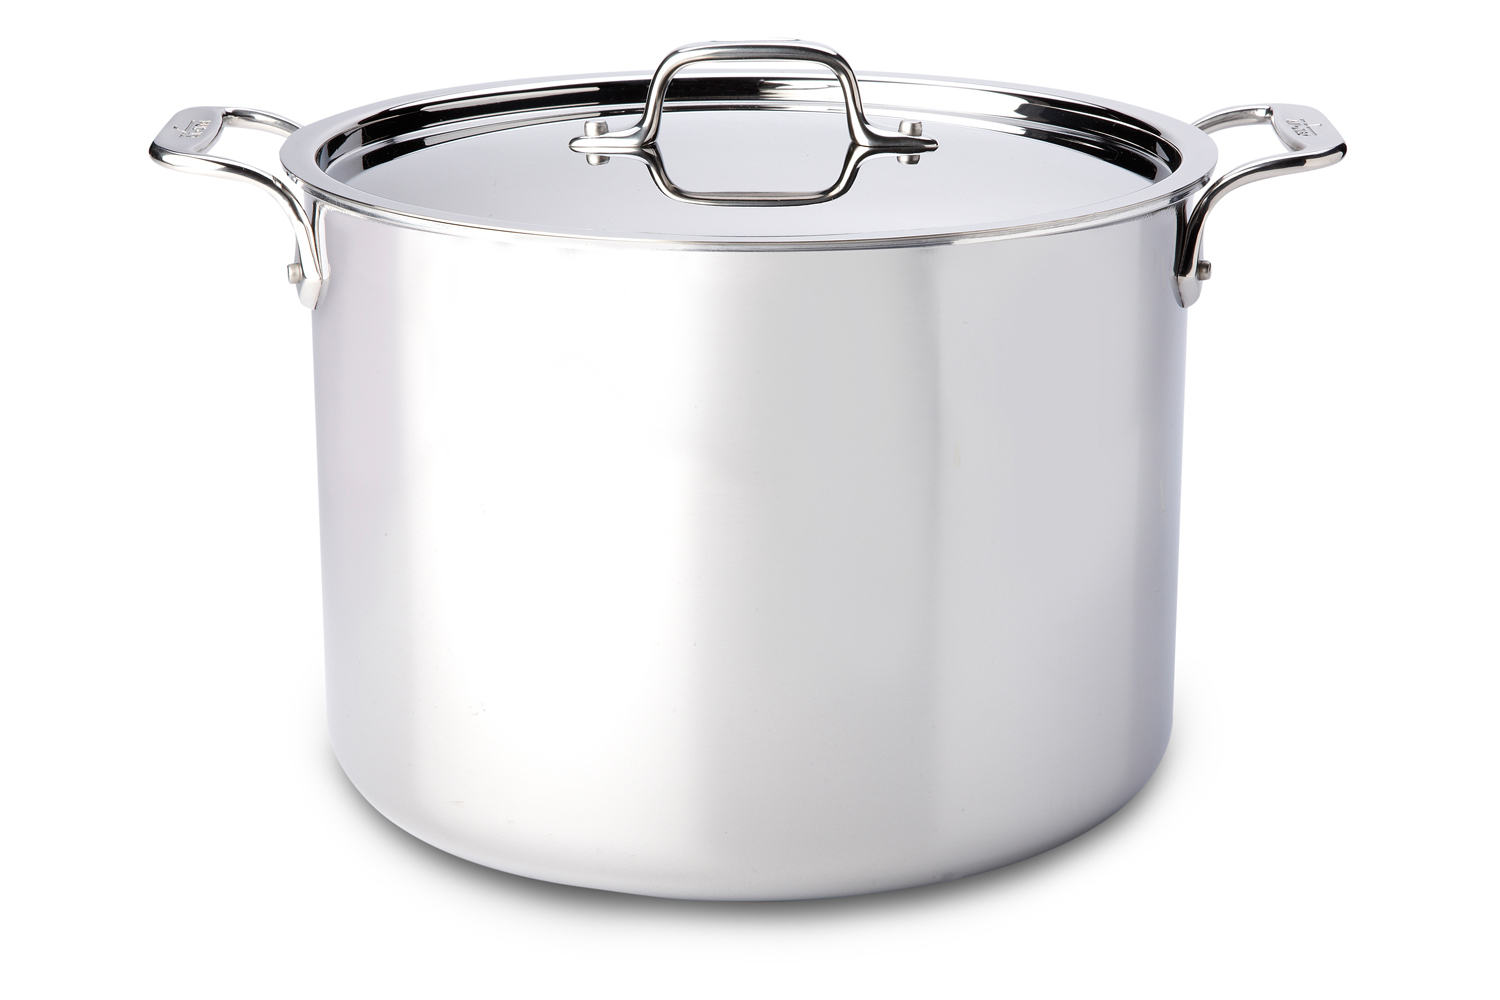 All-Clad d3 Tri-Ply Stainless Steel 12 qt. Stock Pot w/Lid